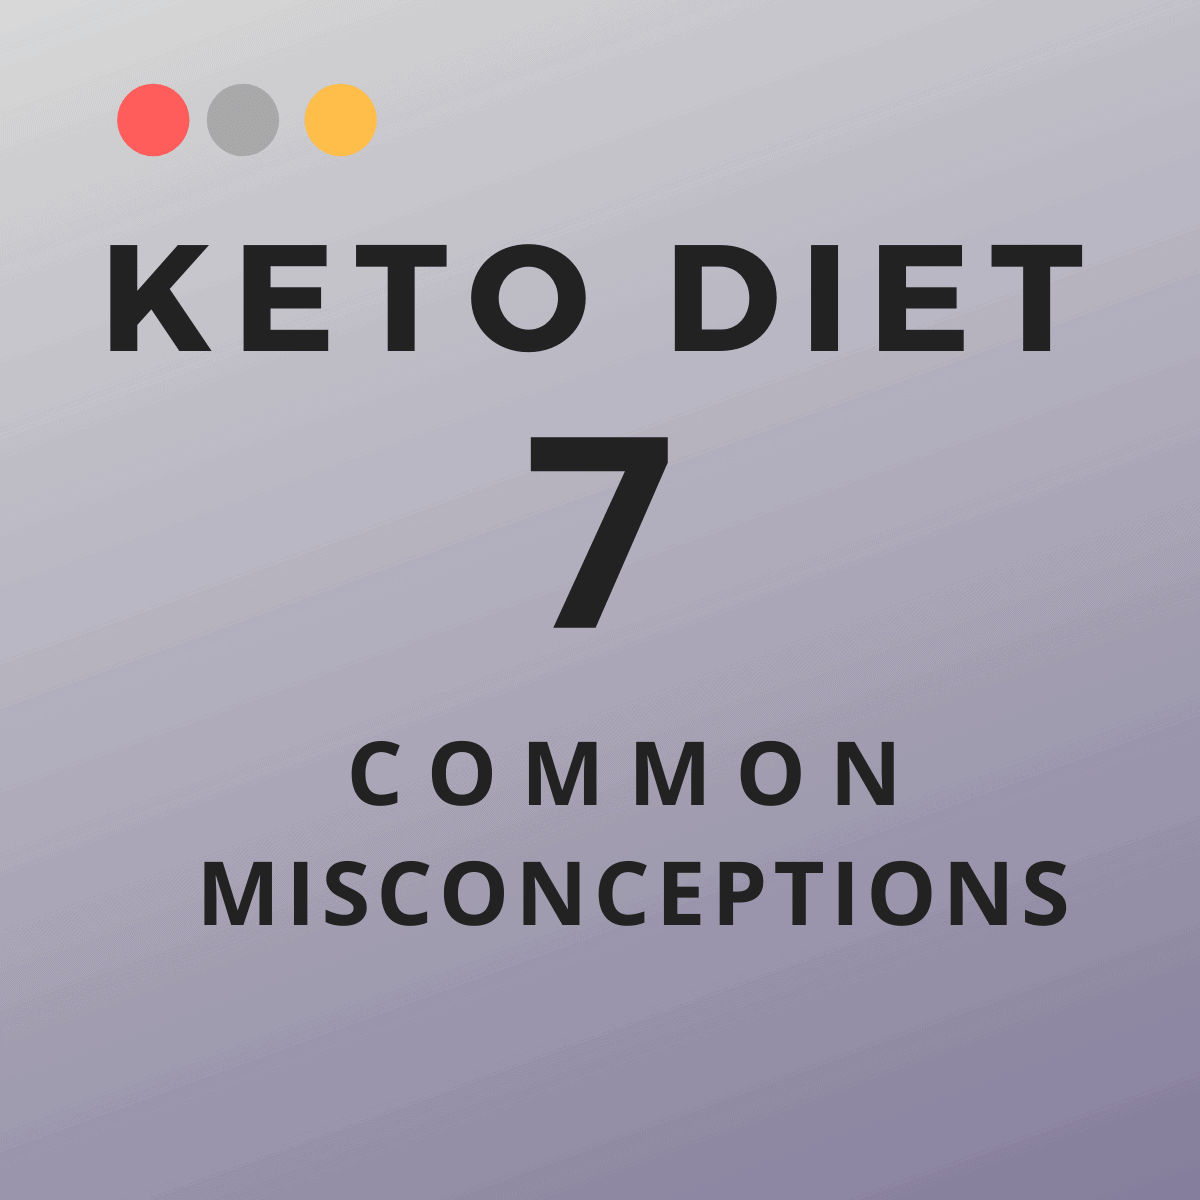 7 Misconceptions about Keto